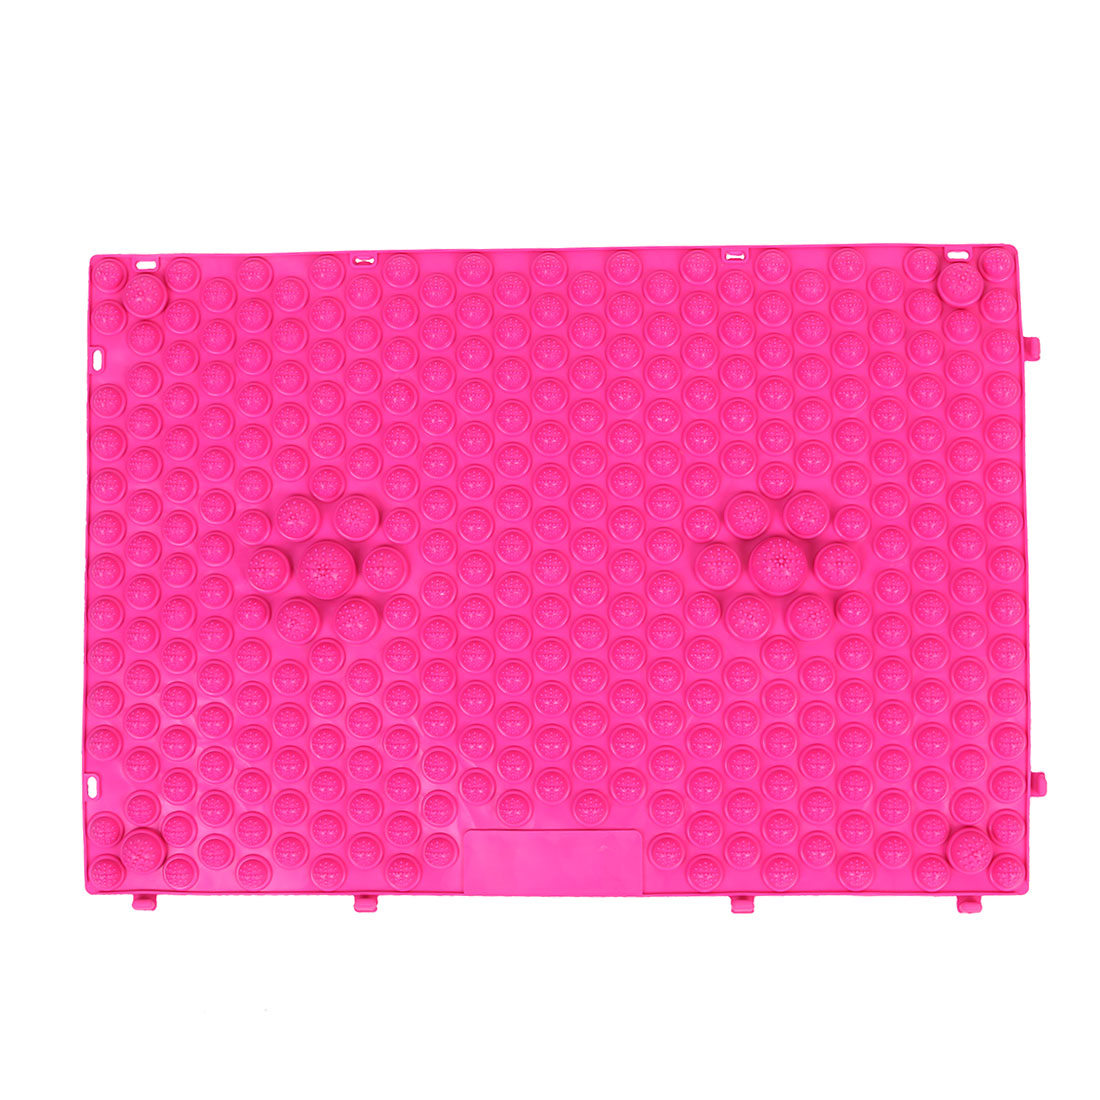 Outdoor Leisure Game Rubber Foot Massage Mat Shiatsu Sheet Fuchsia